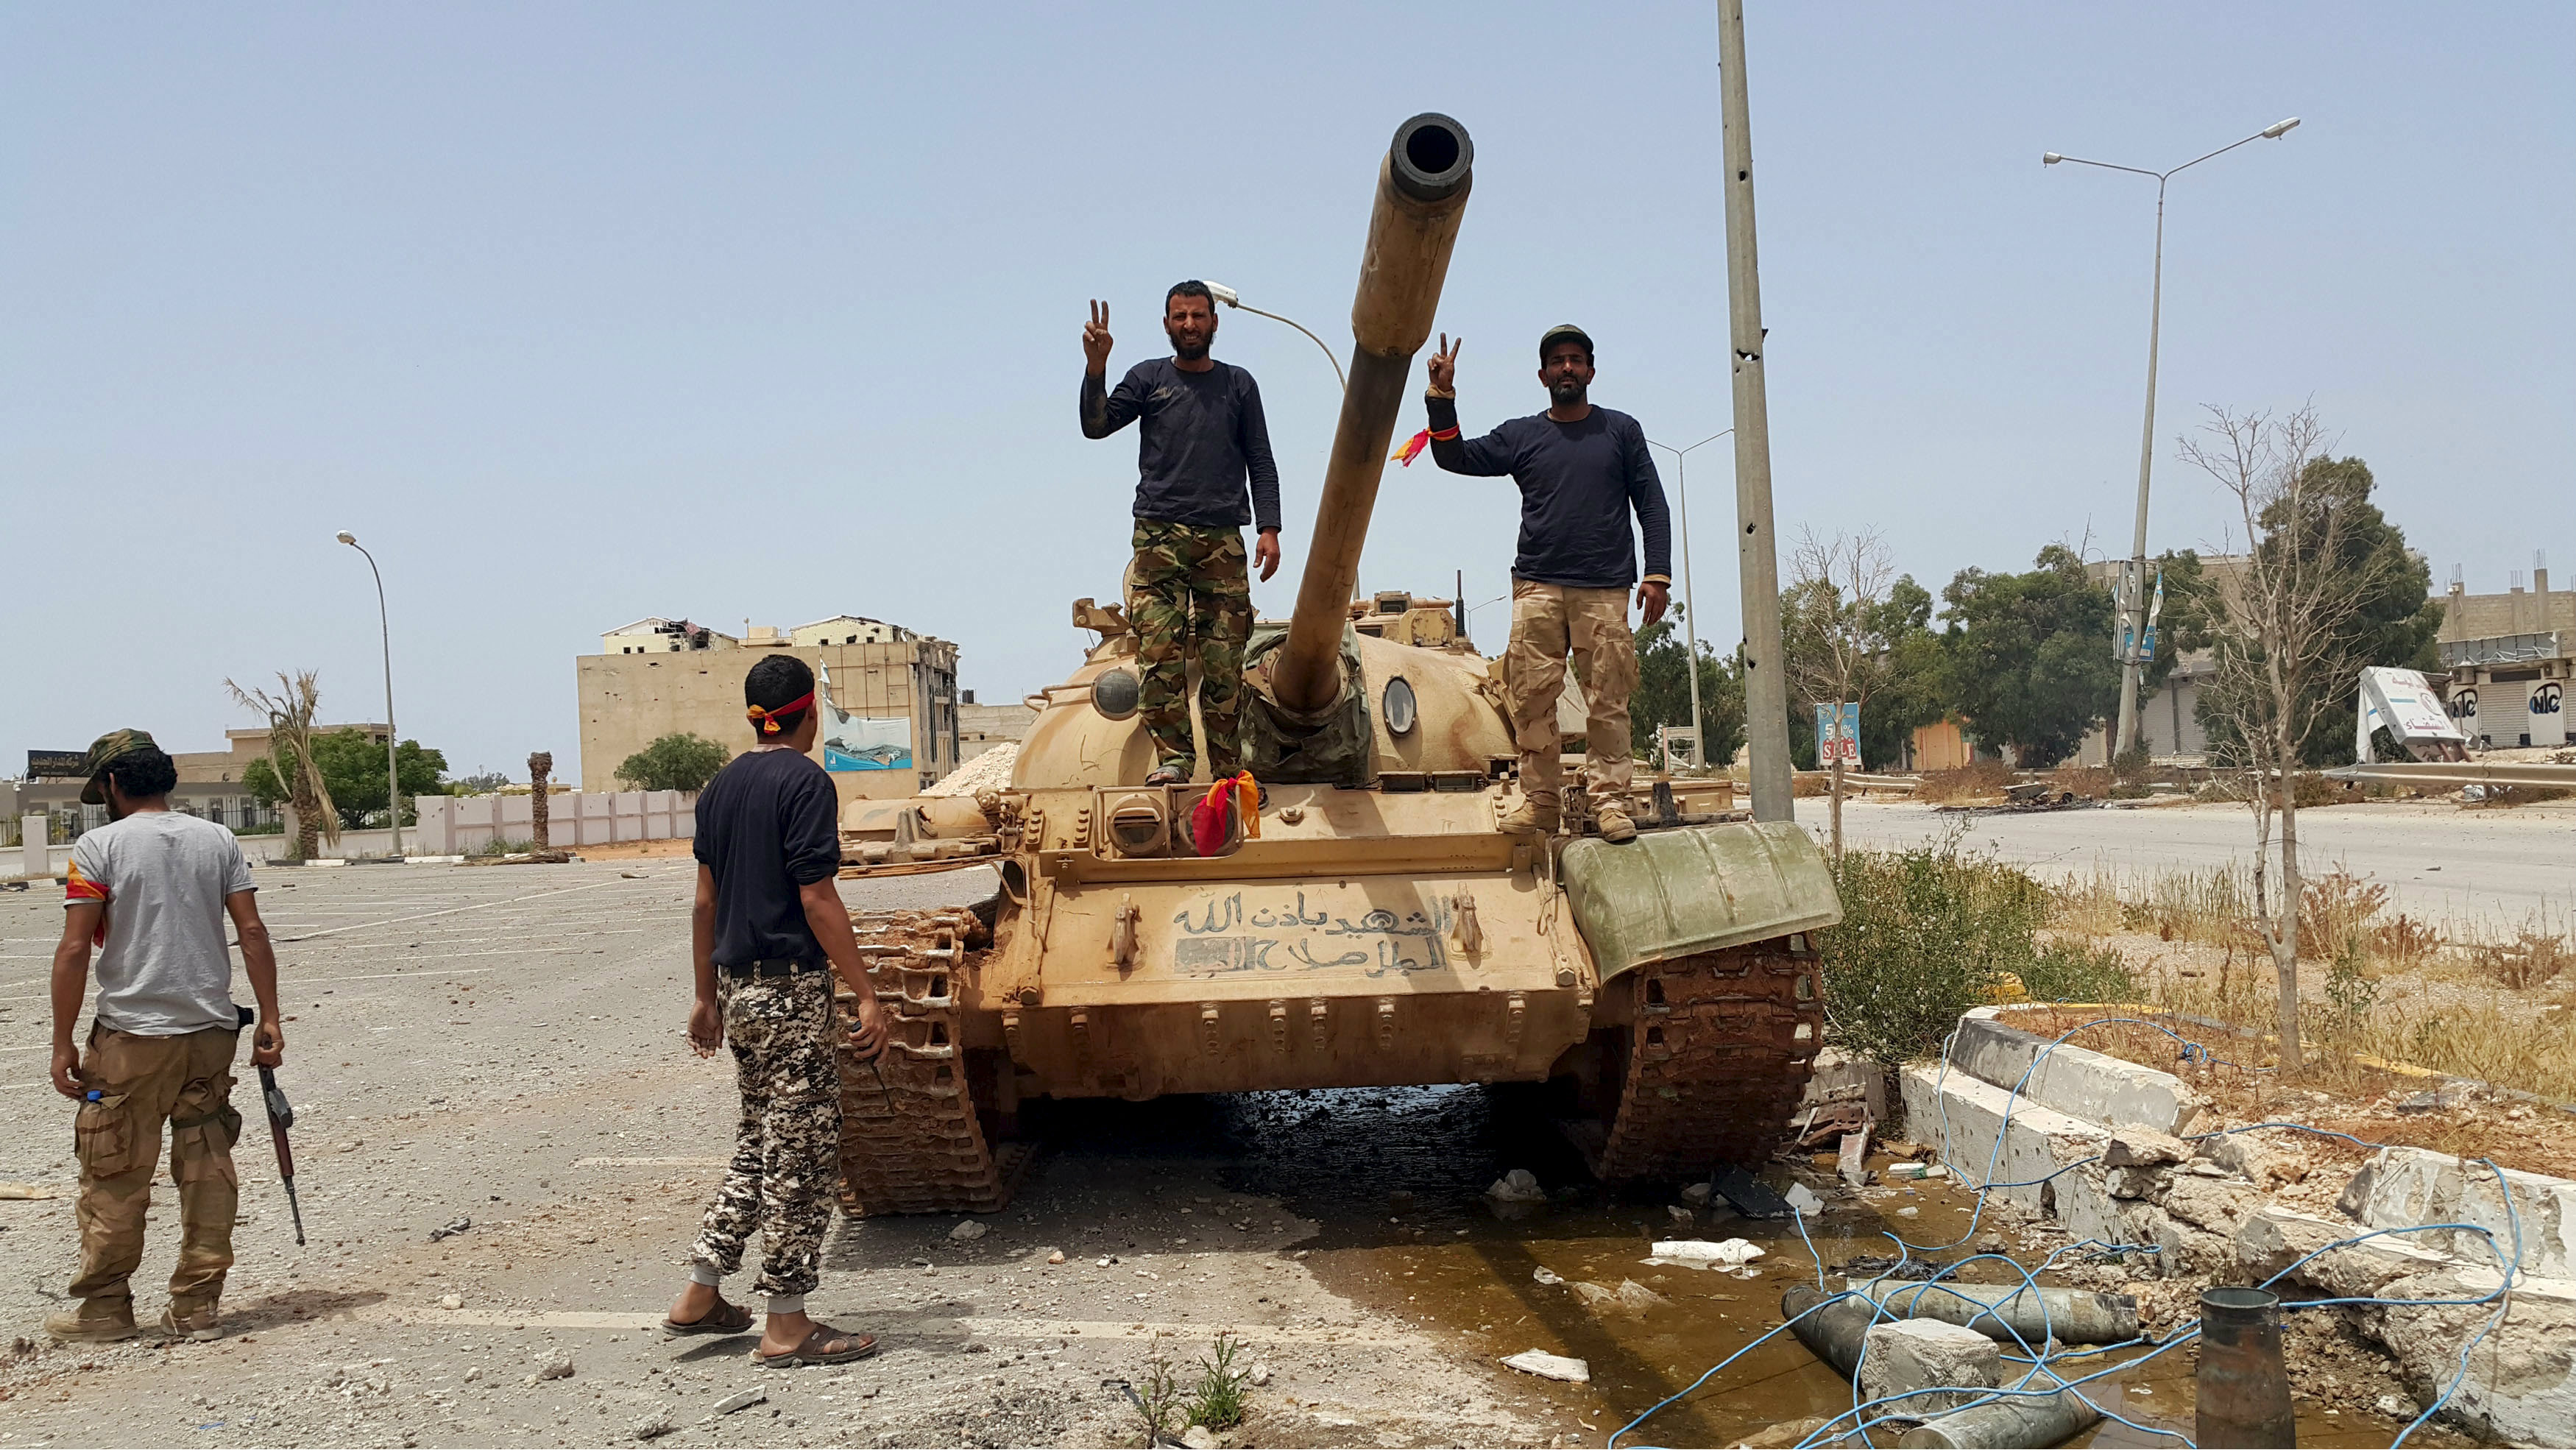 Members of the Libyan pro-government forces gesture as they stand on a tank in Benghazi, Libya, May 21, 2015.